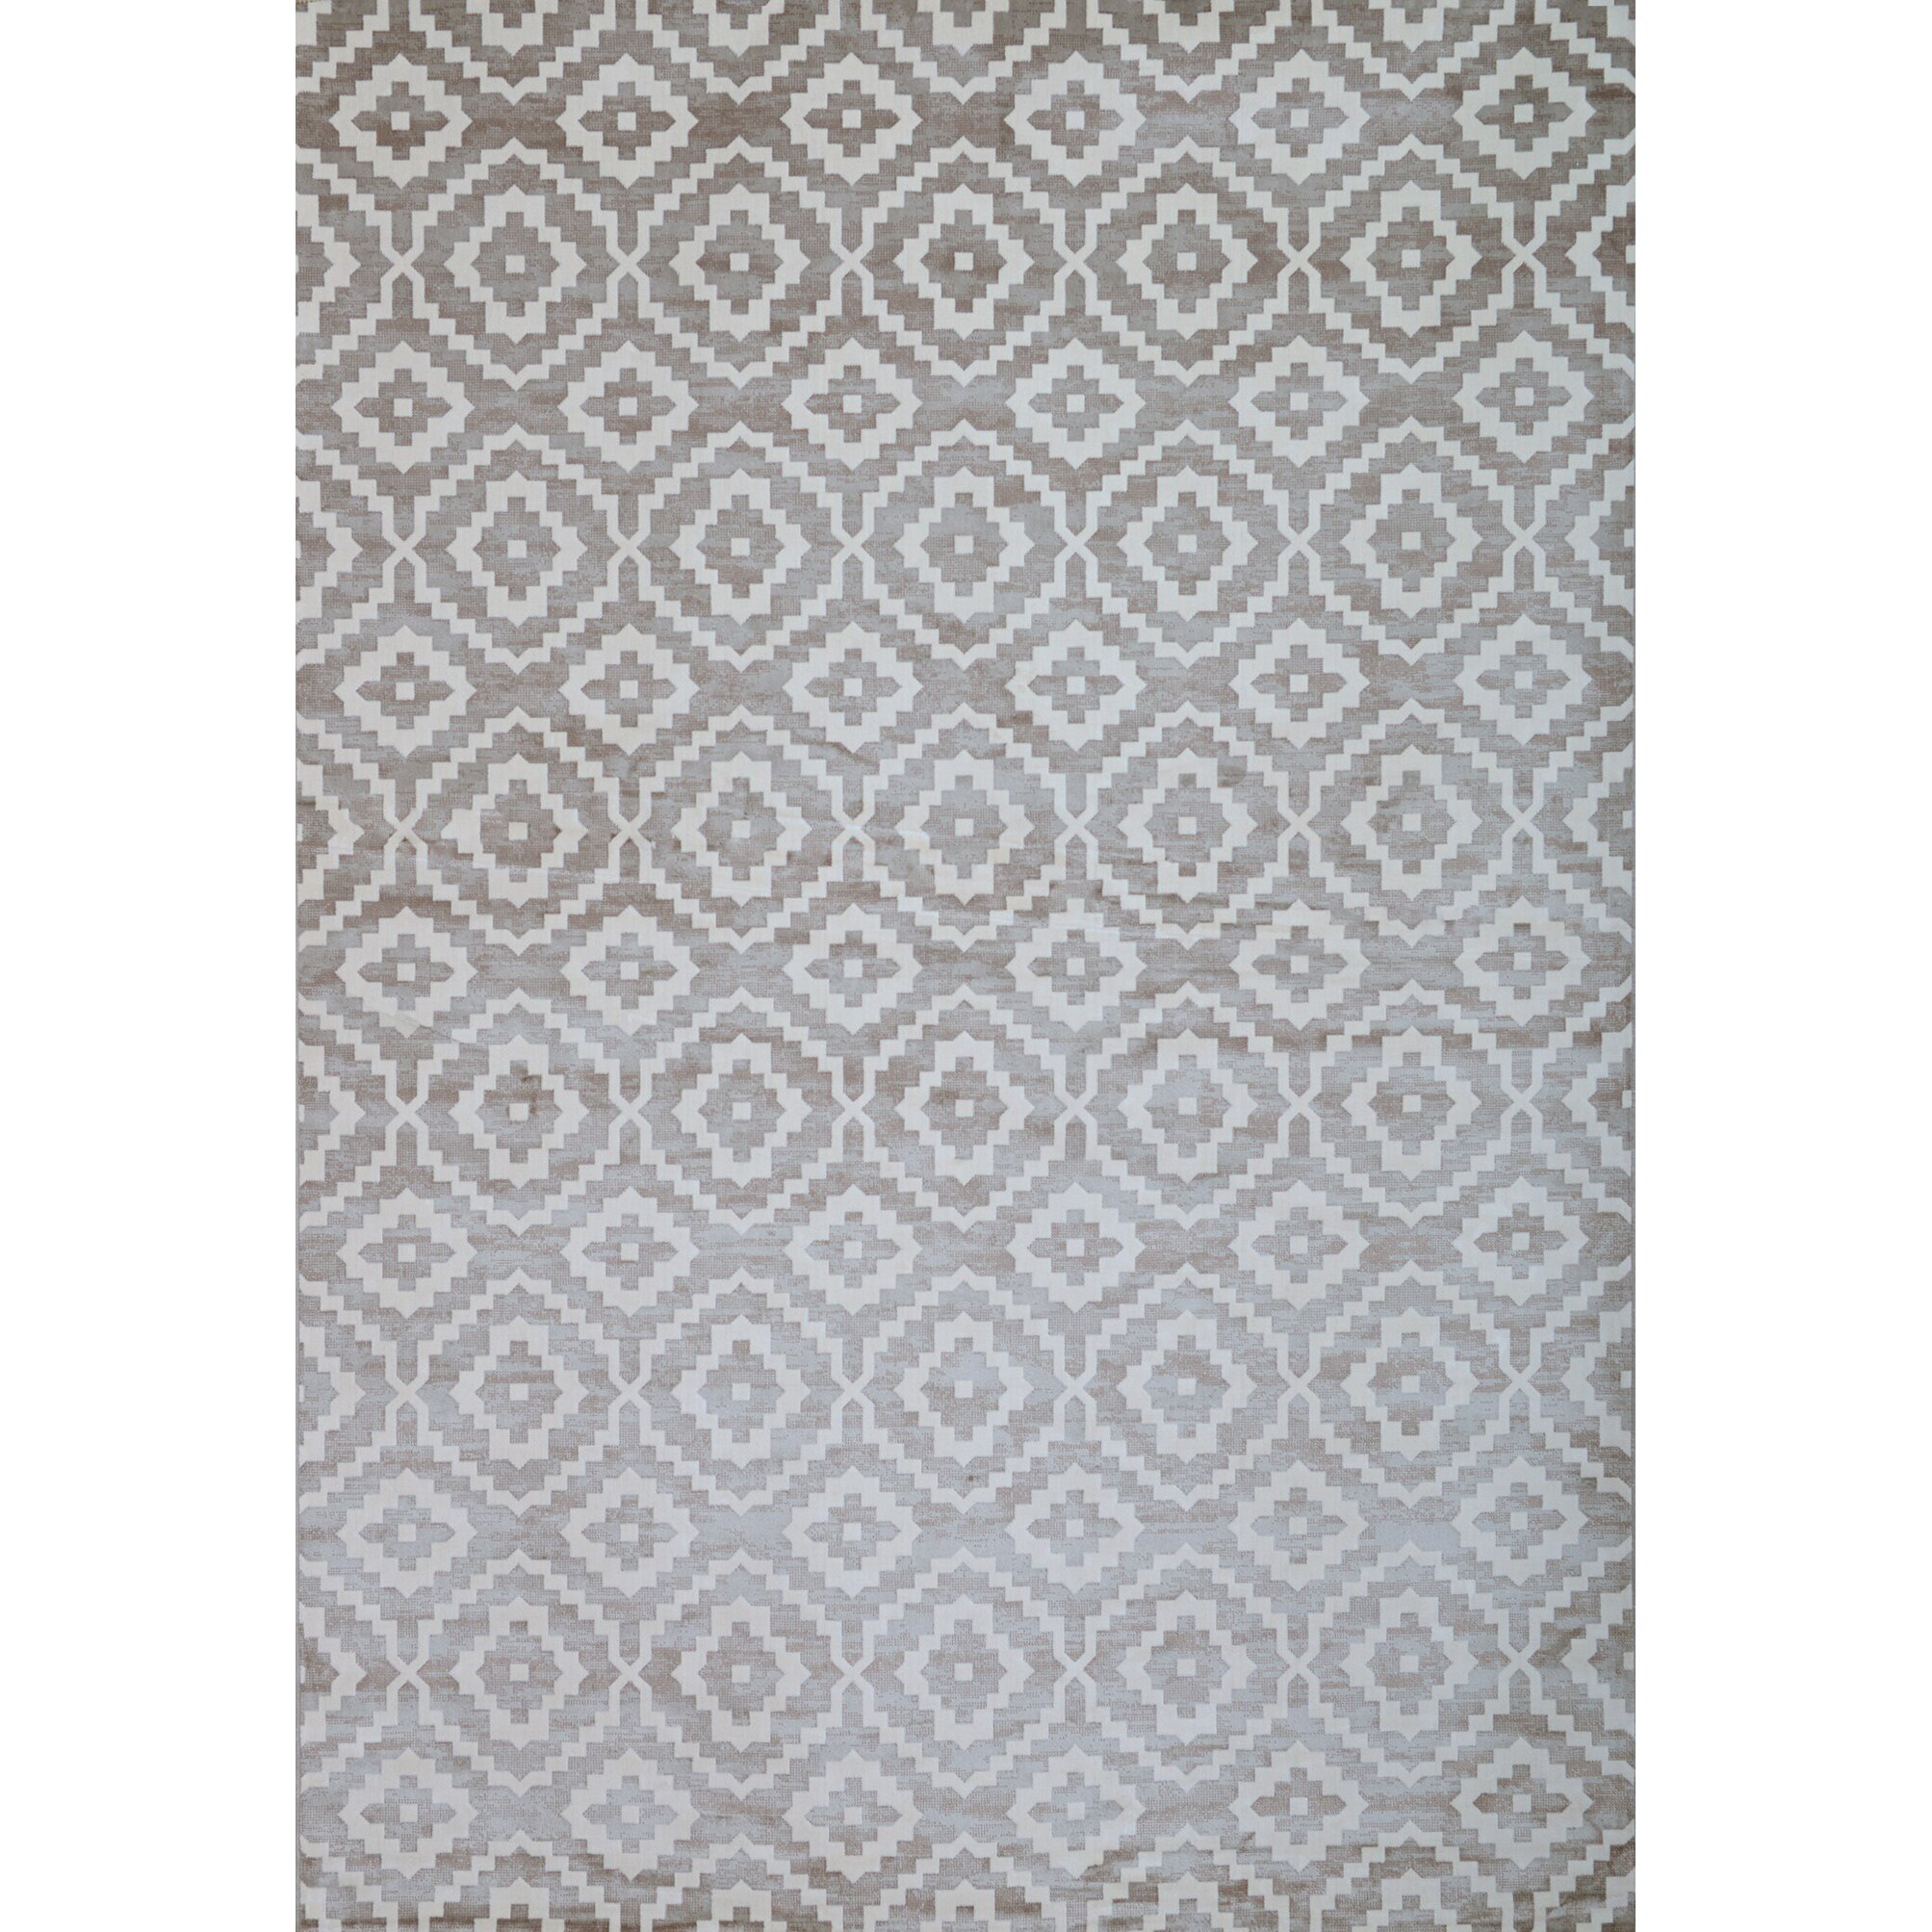 Abacasa sonoma silver grey white area rug wayfair for White area rug